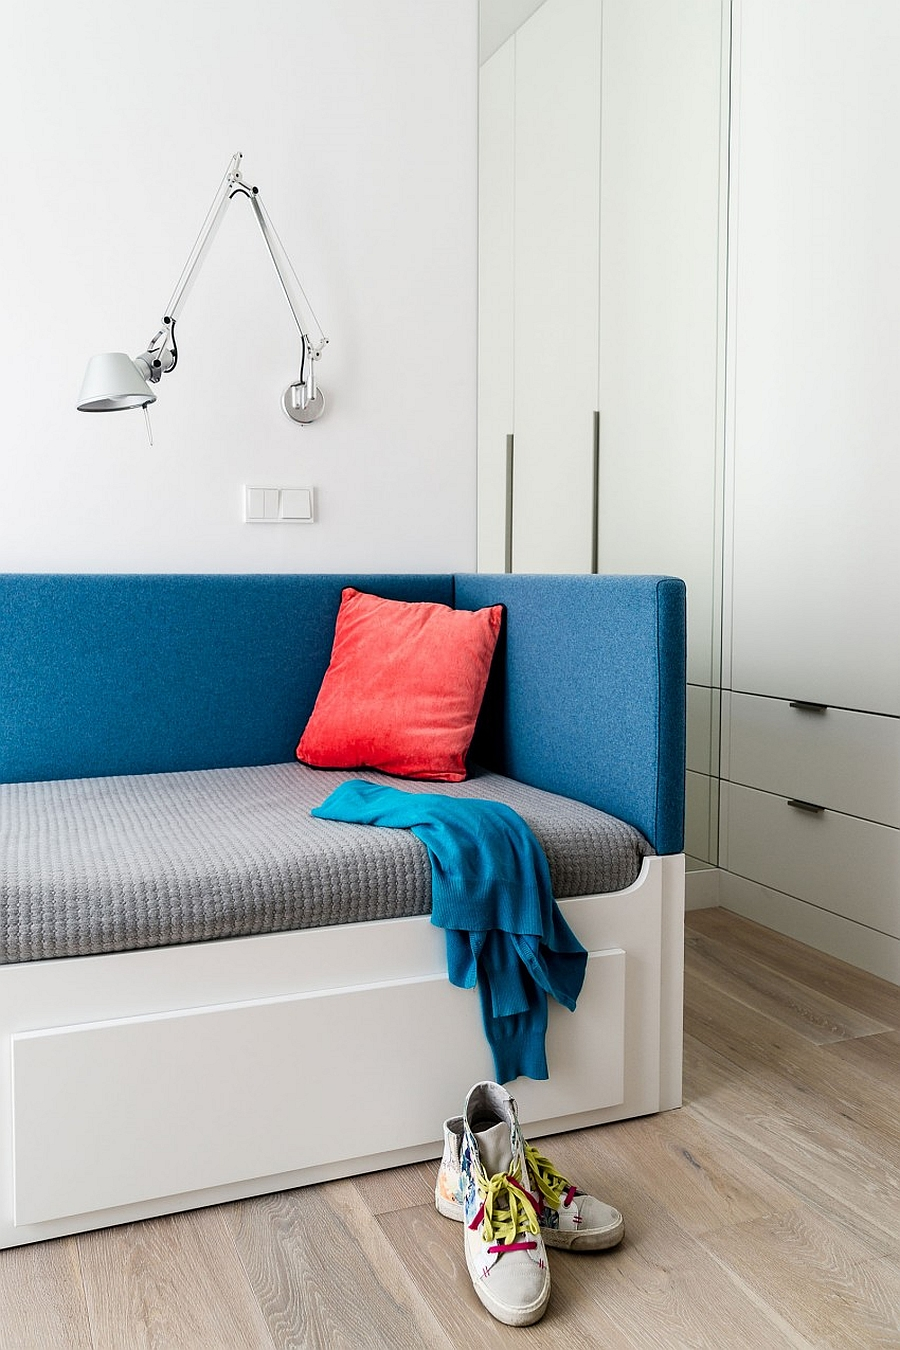 Sconce lighting helps save up precious foot space